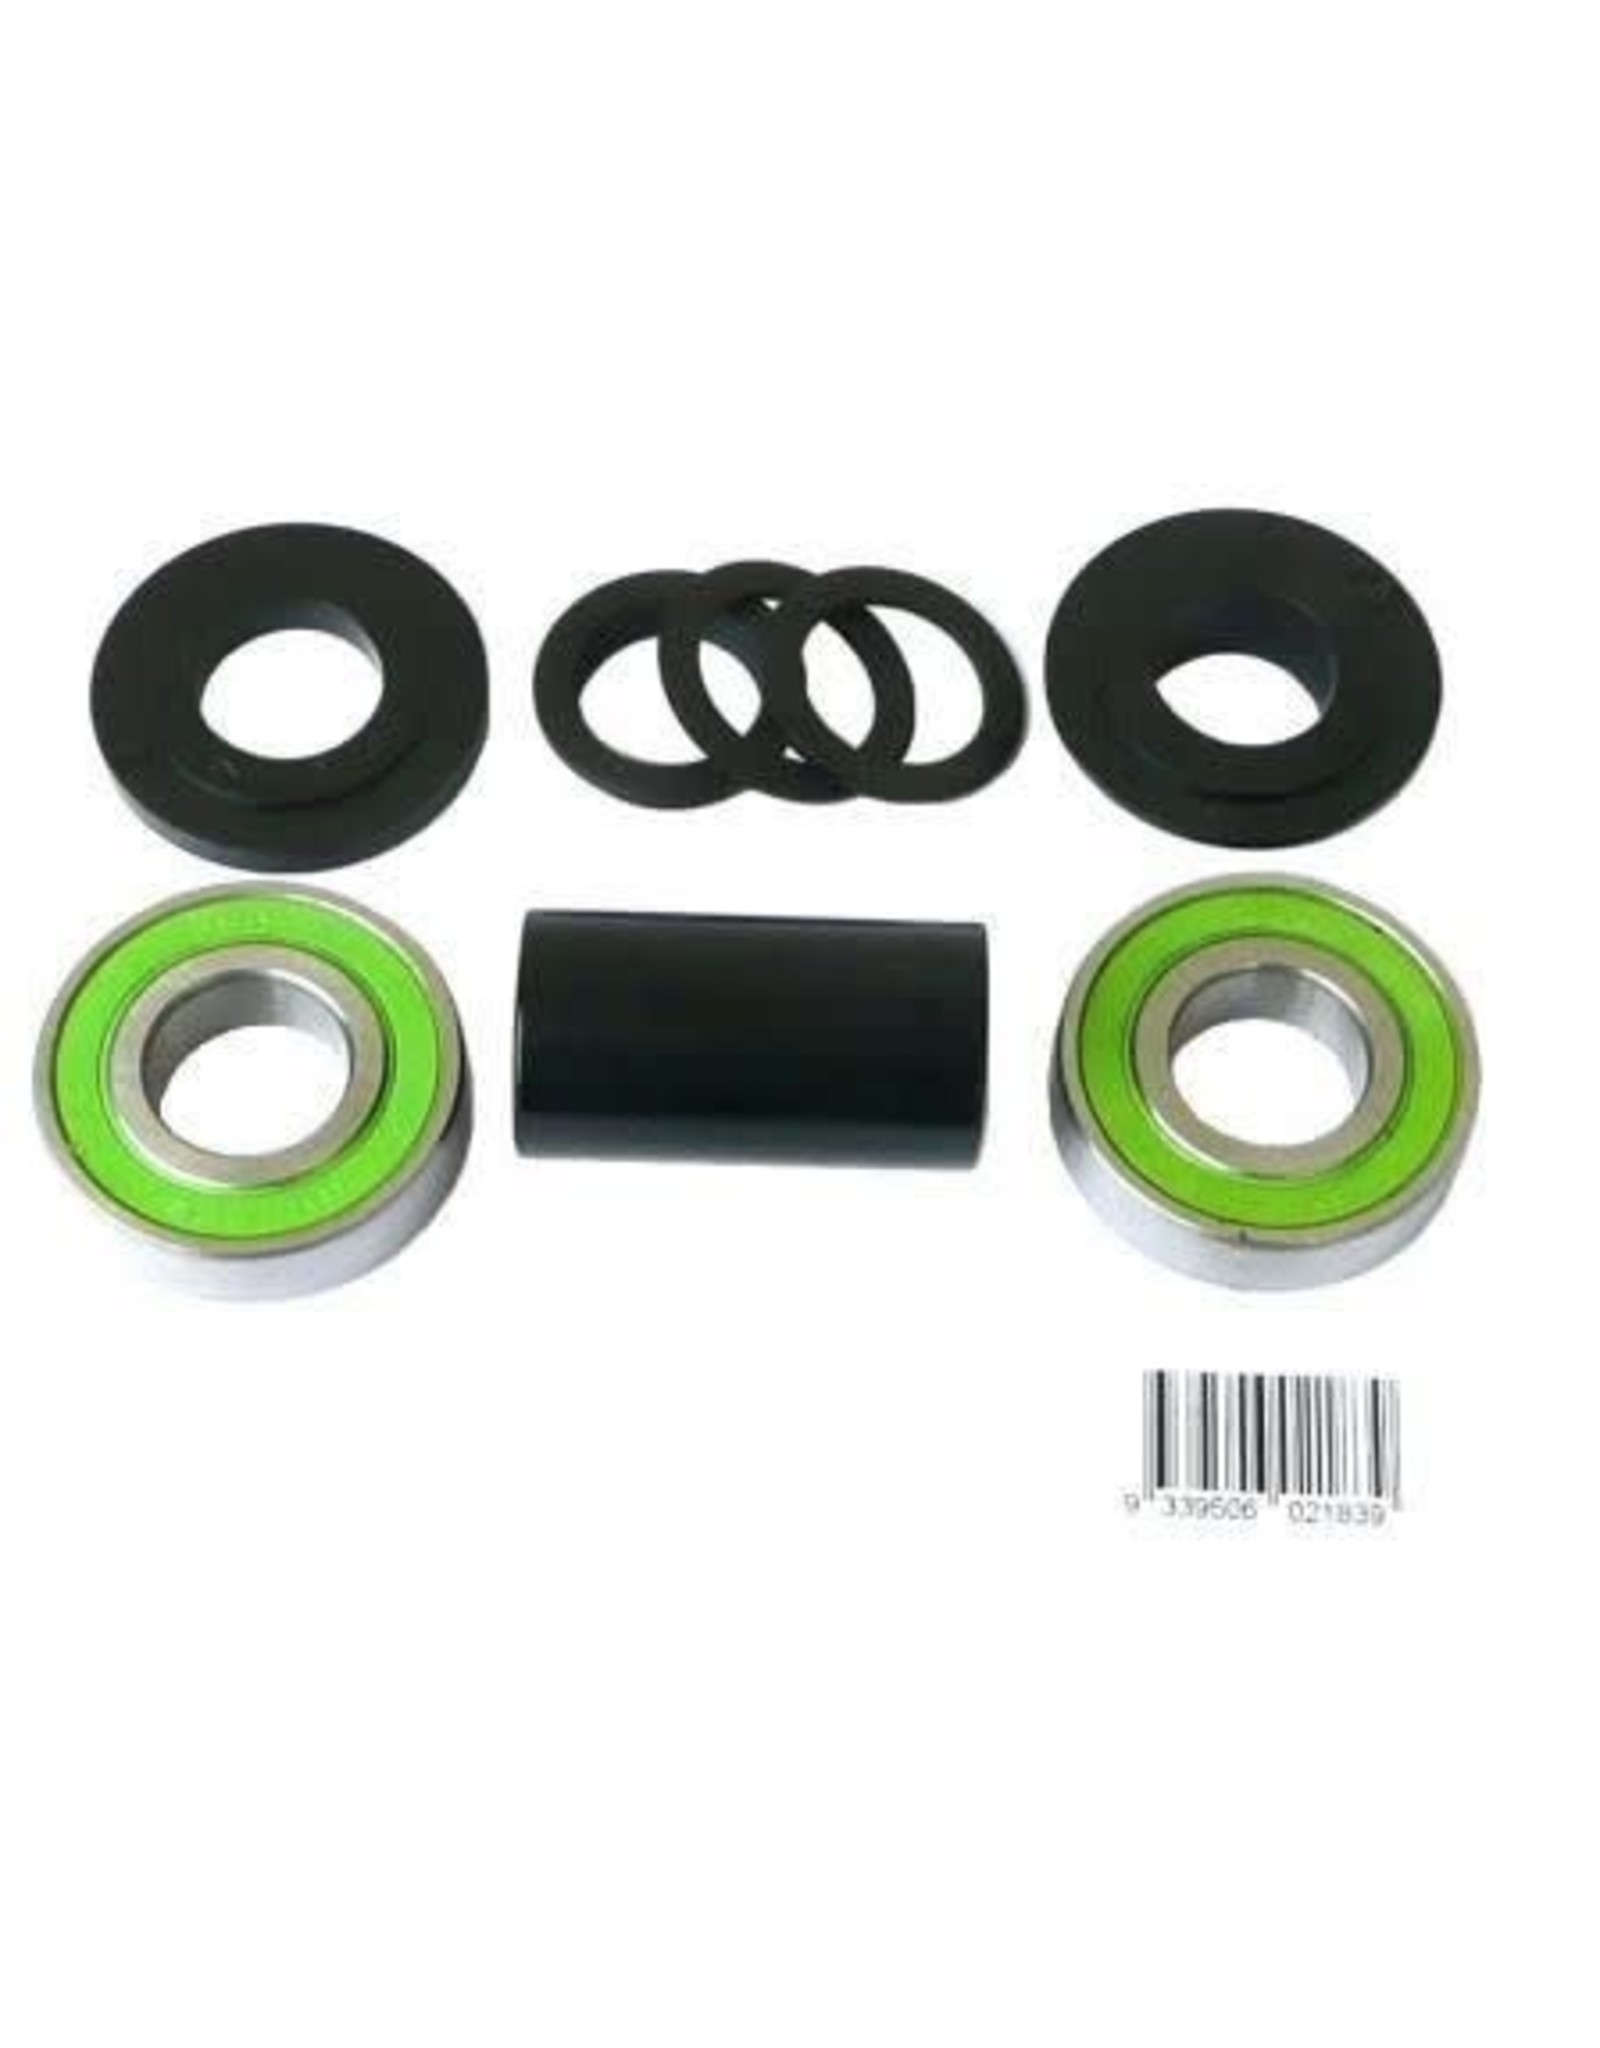 19mm, MID TYPE BOTTOM BRACKET